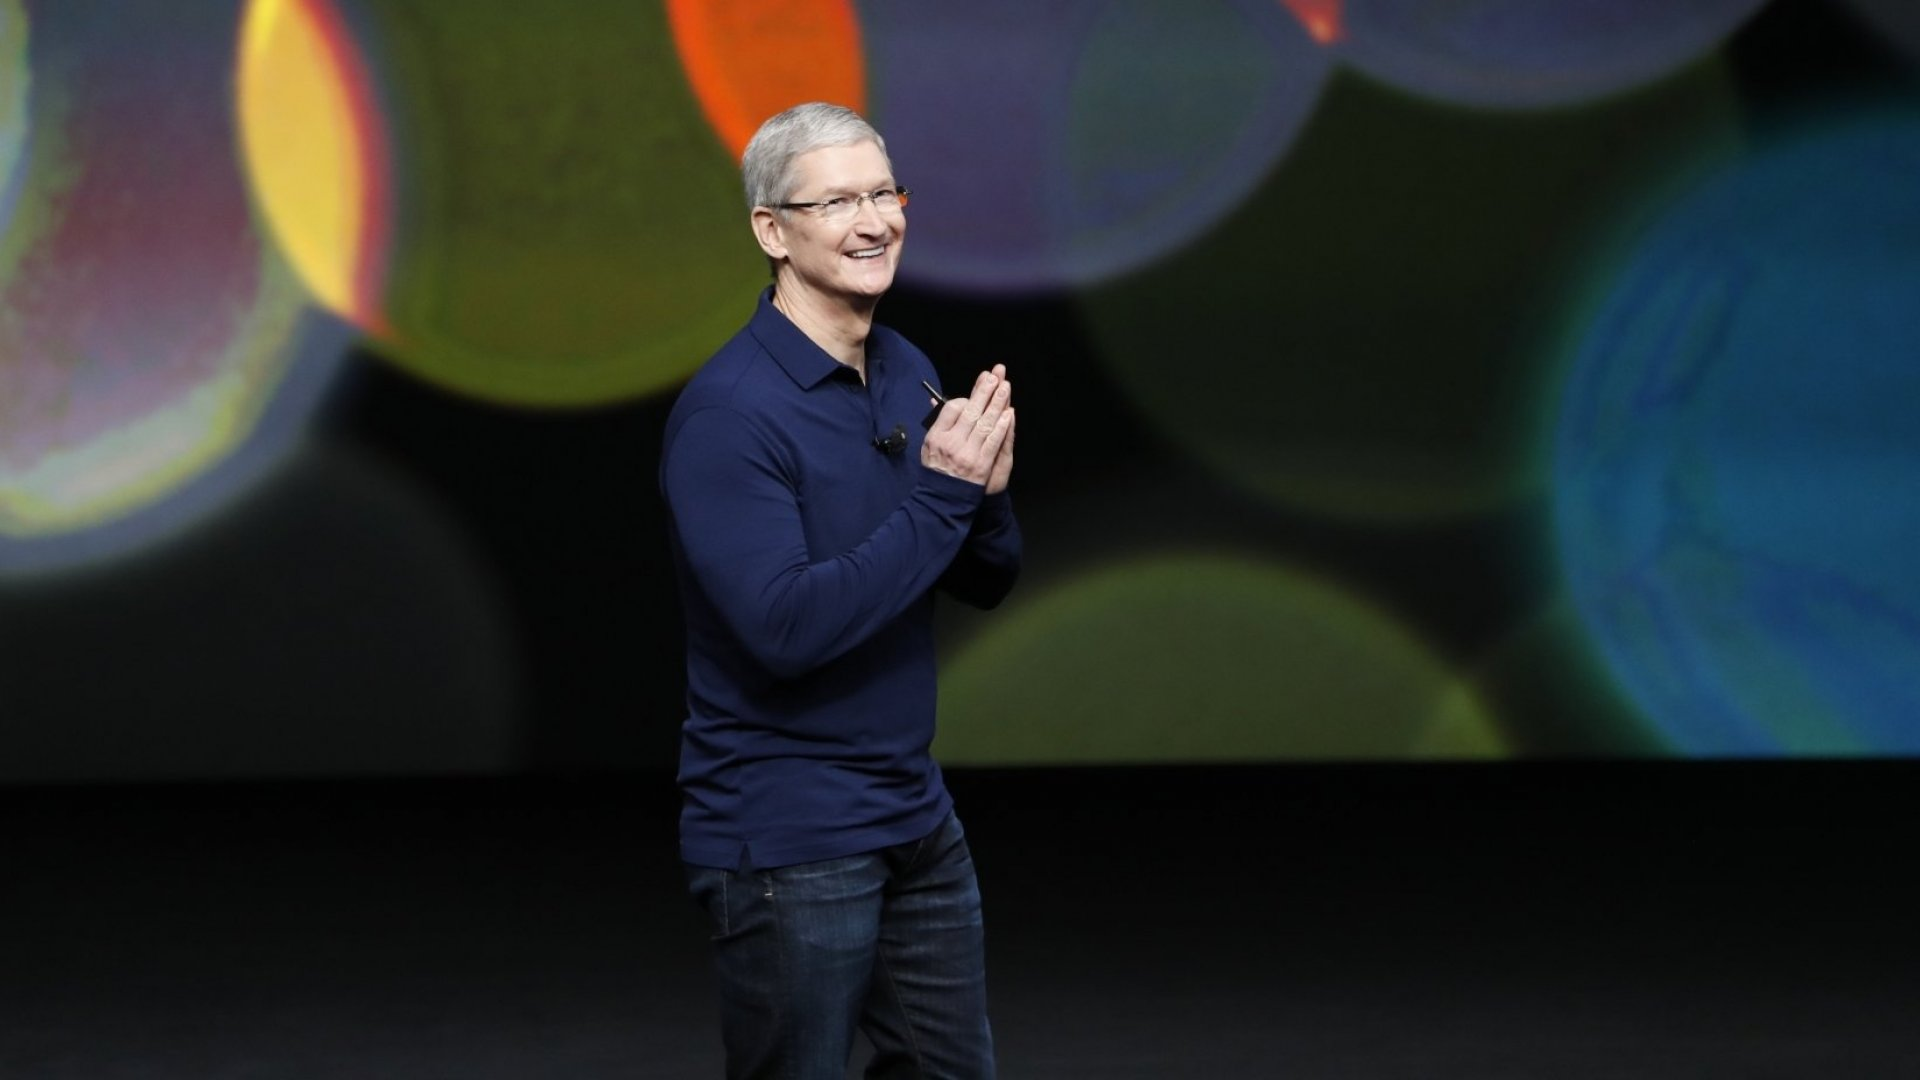 Apple CEO Tim Cook during a launch event in San Francisco on September 7, 2016.